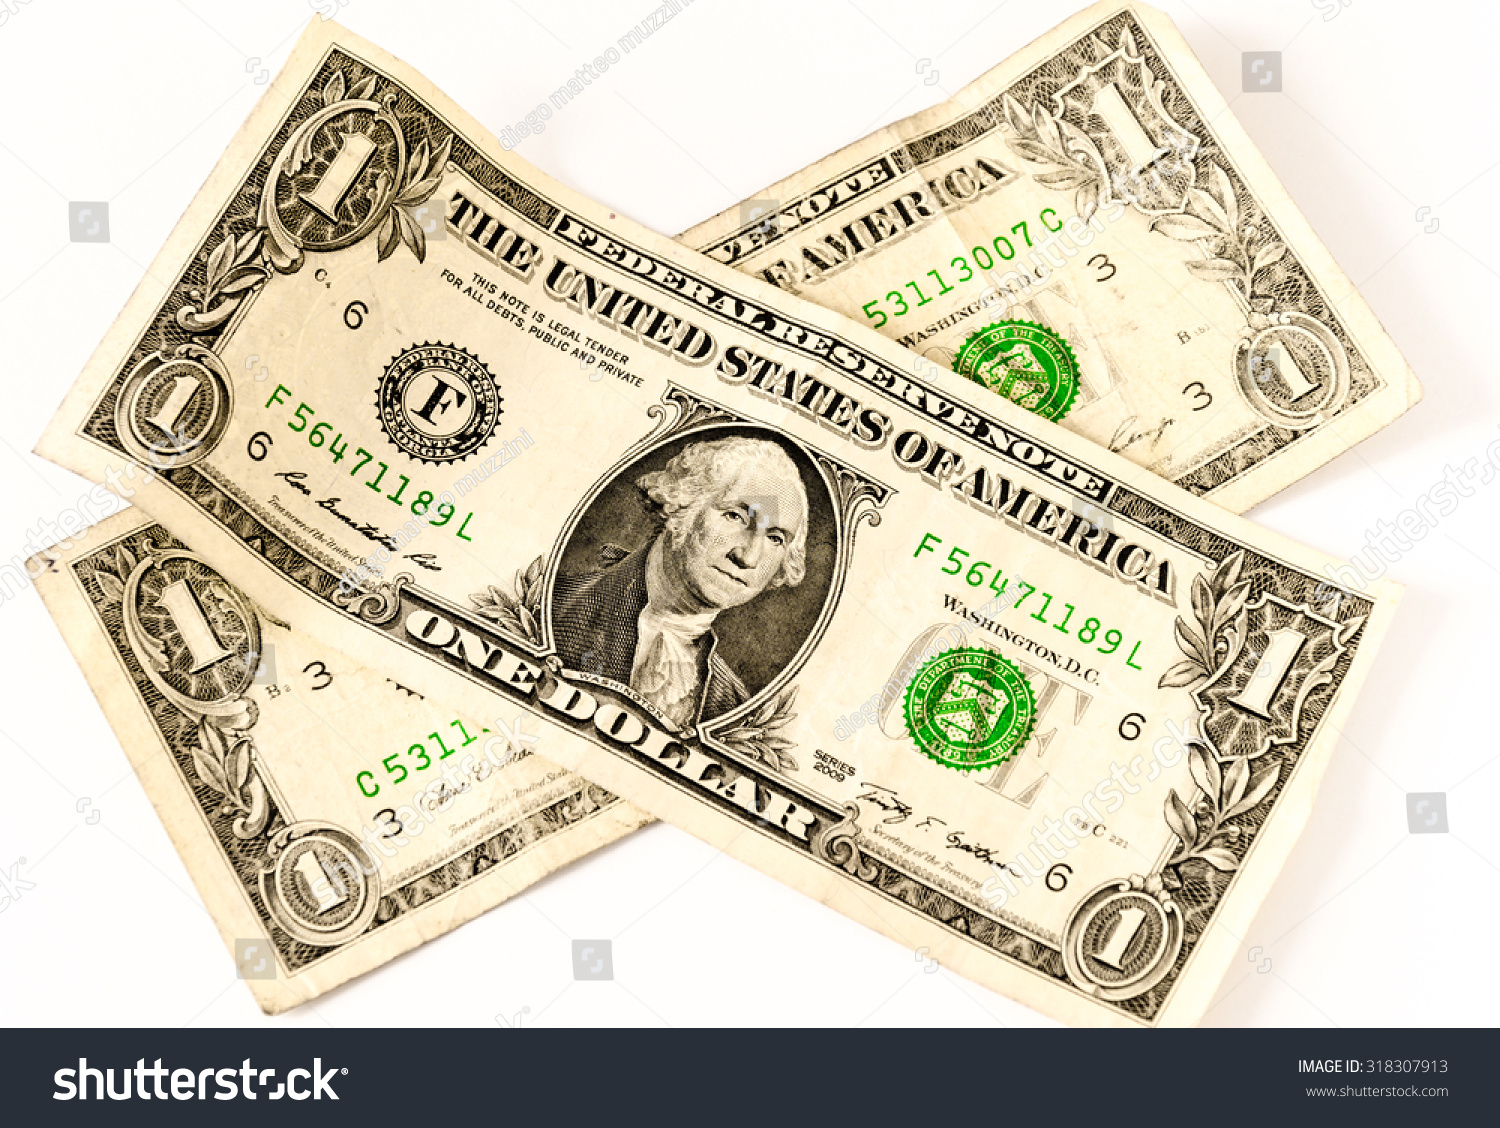 Two usa dollars cross shape business stock photo 318307913 two usa dollars in a cross shape business symbol for wealth and gain or threat buycottarizona Gallery